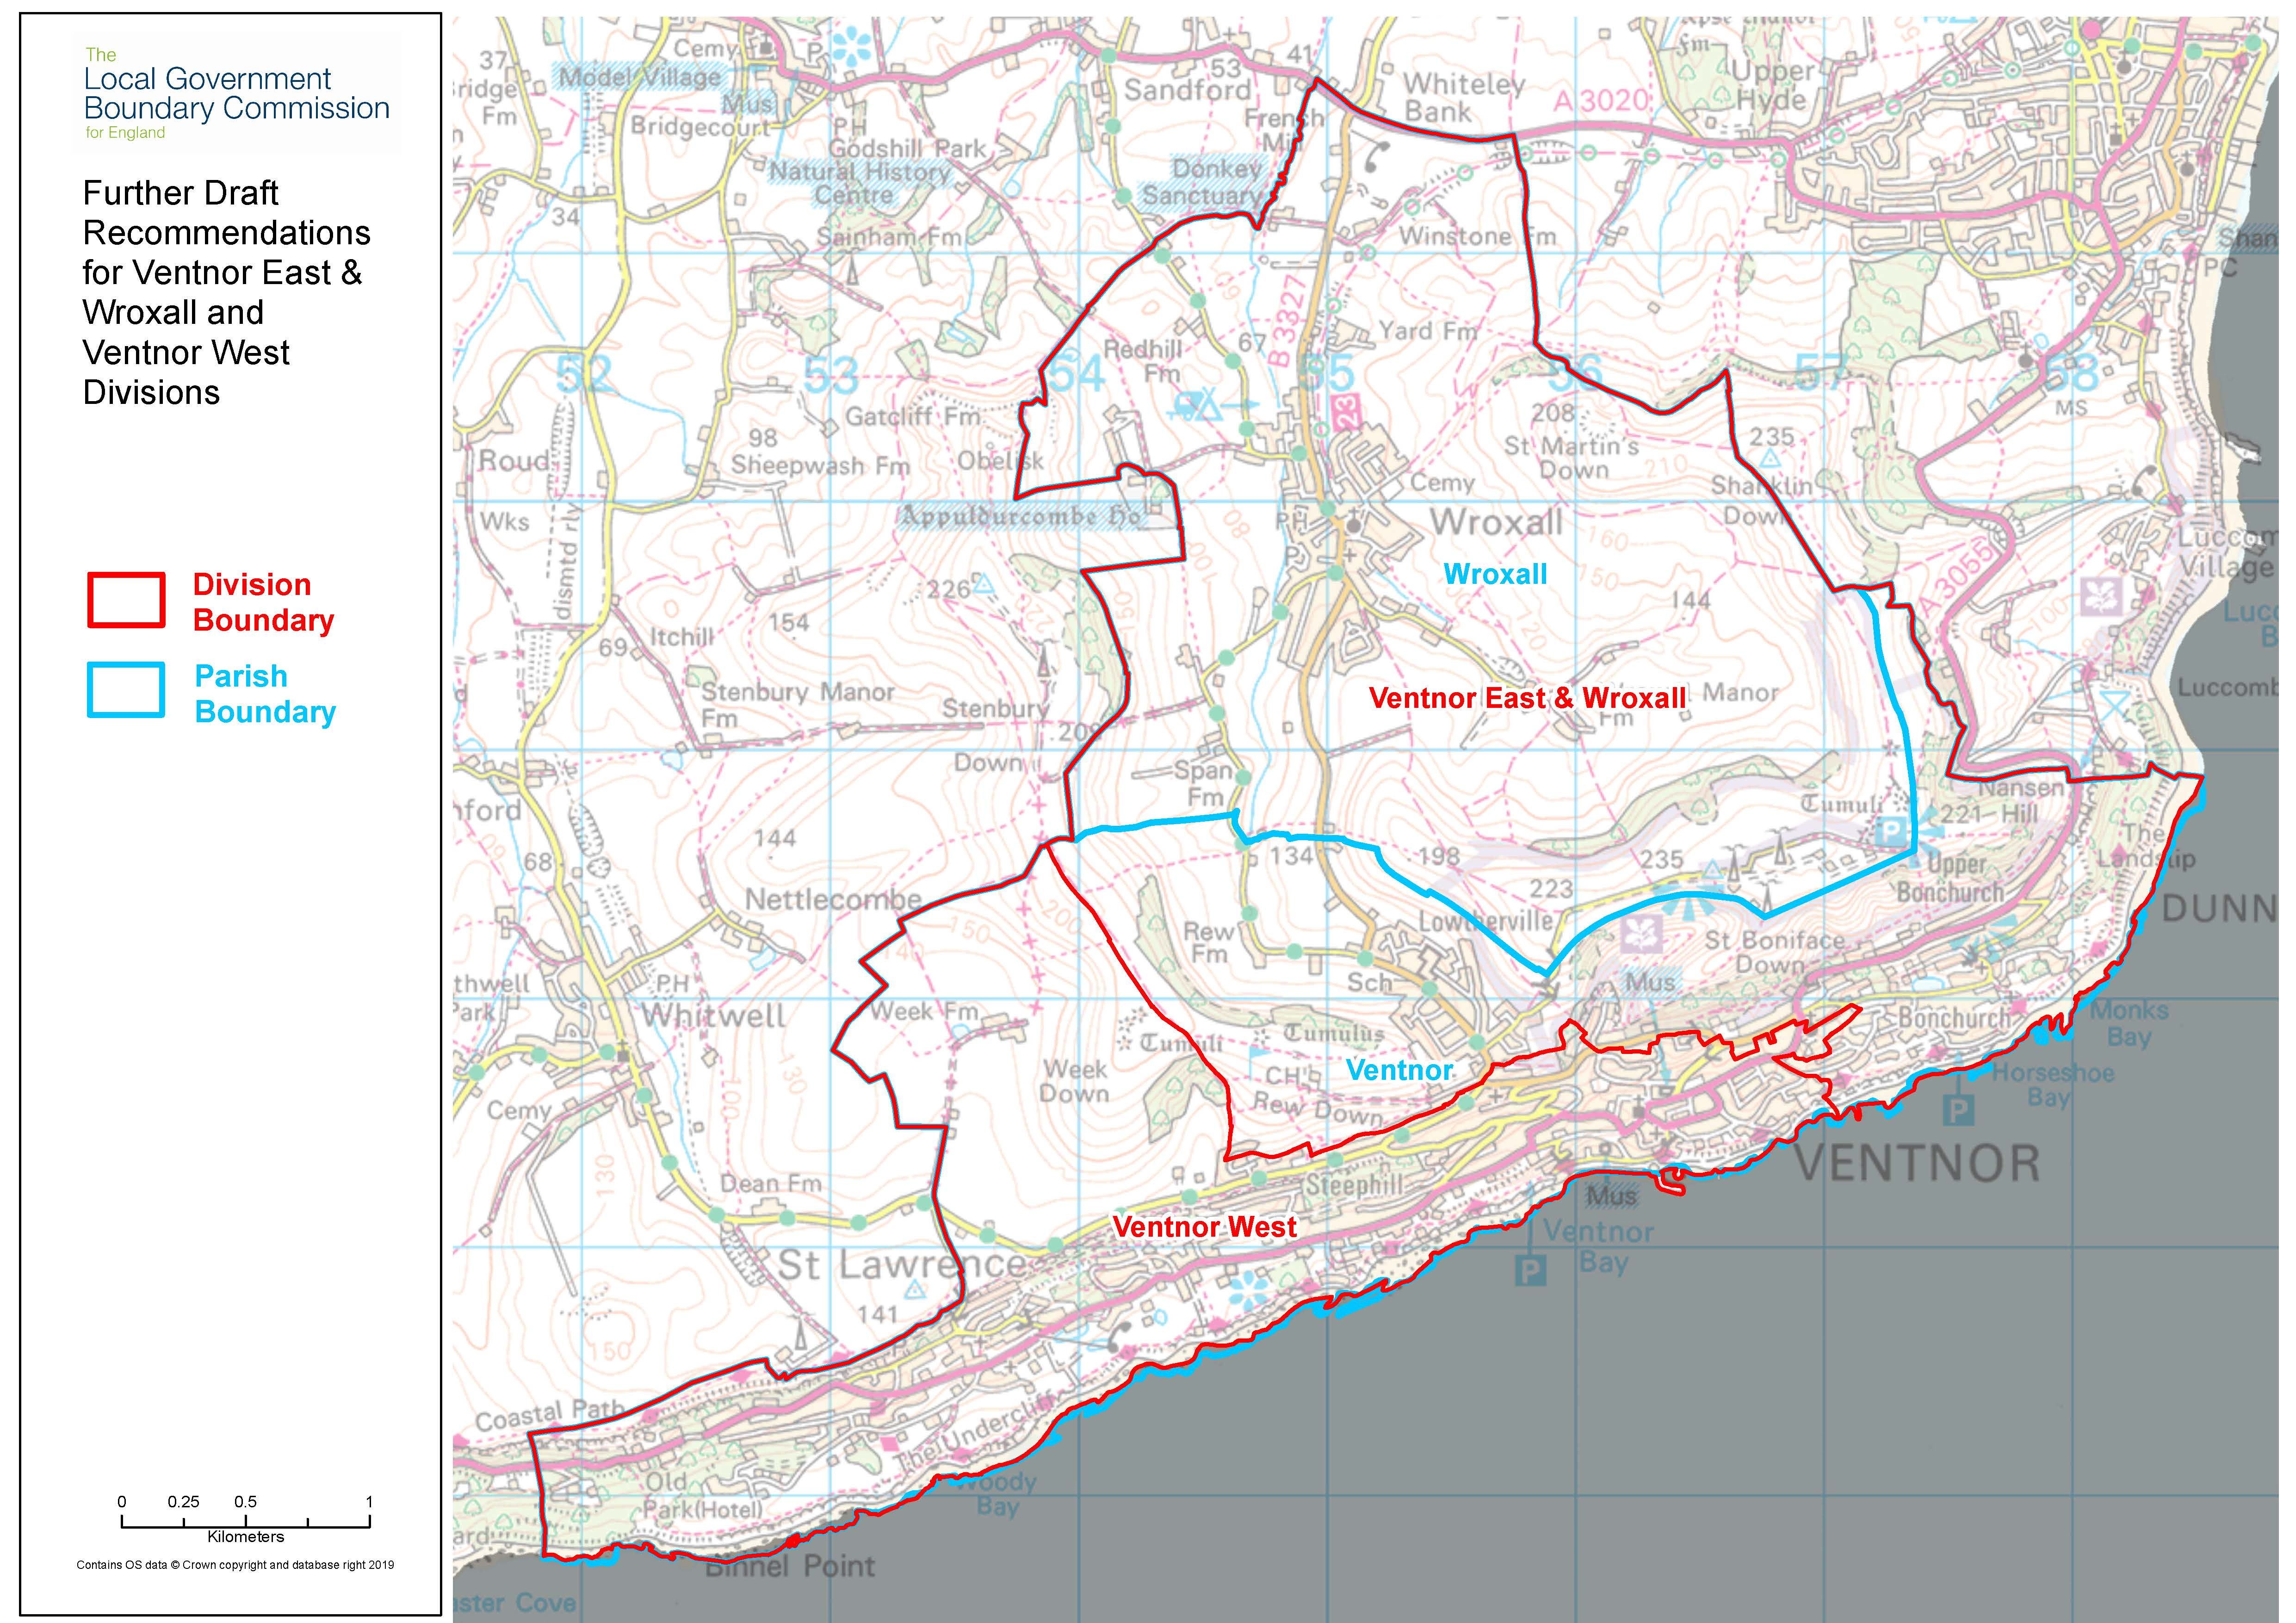 Further draft recommendation mapping for Ventnor and Wroxall